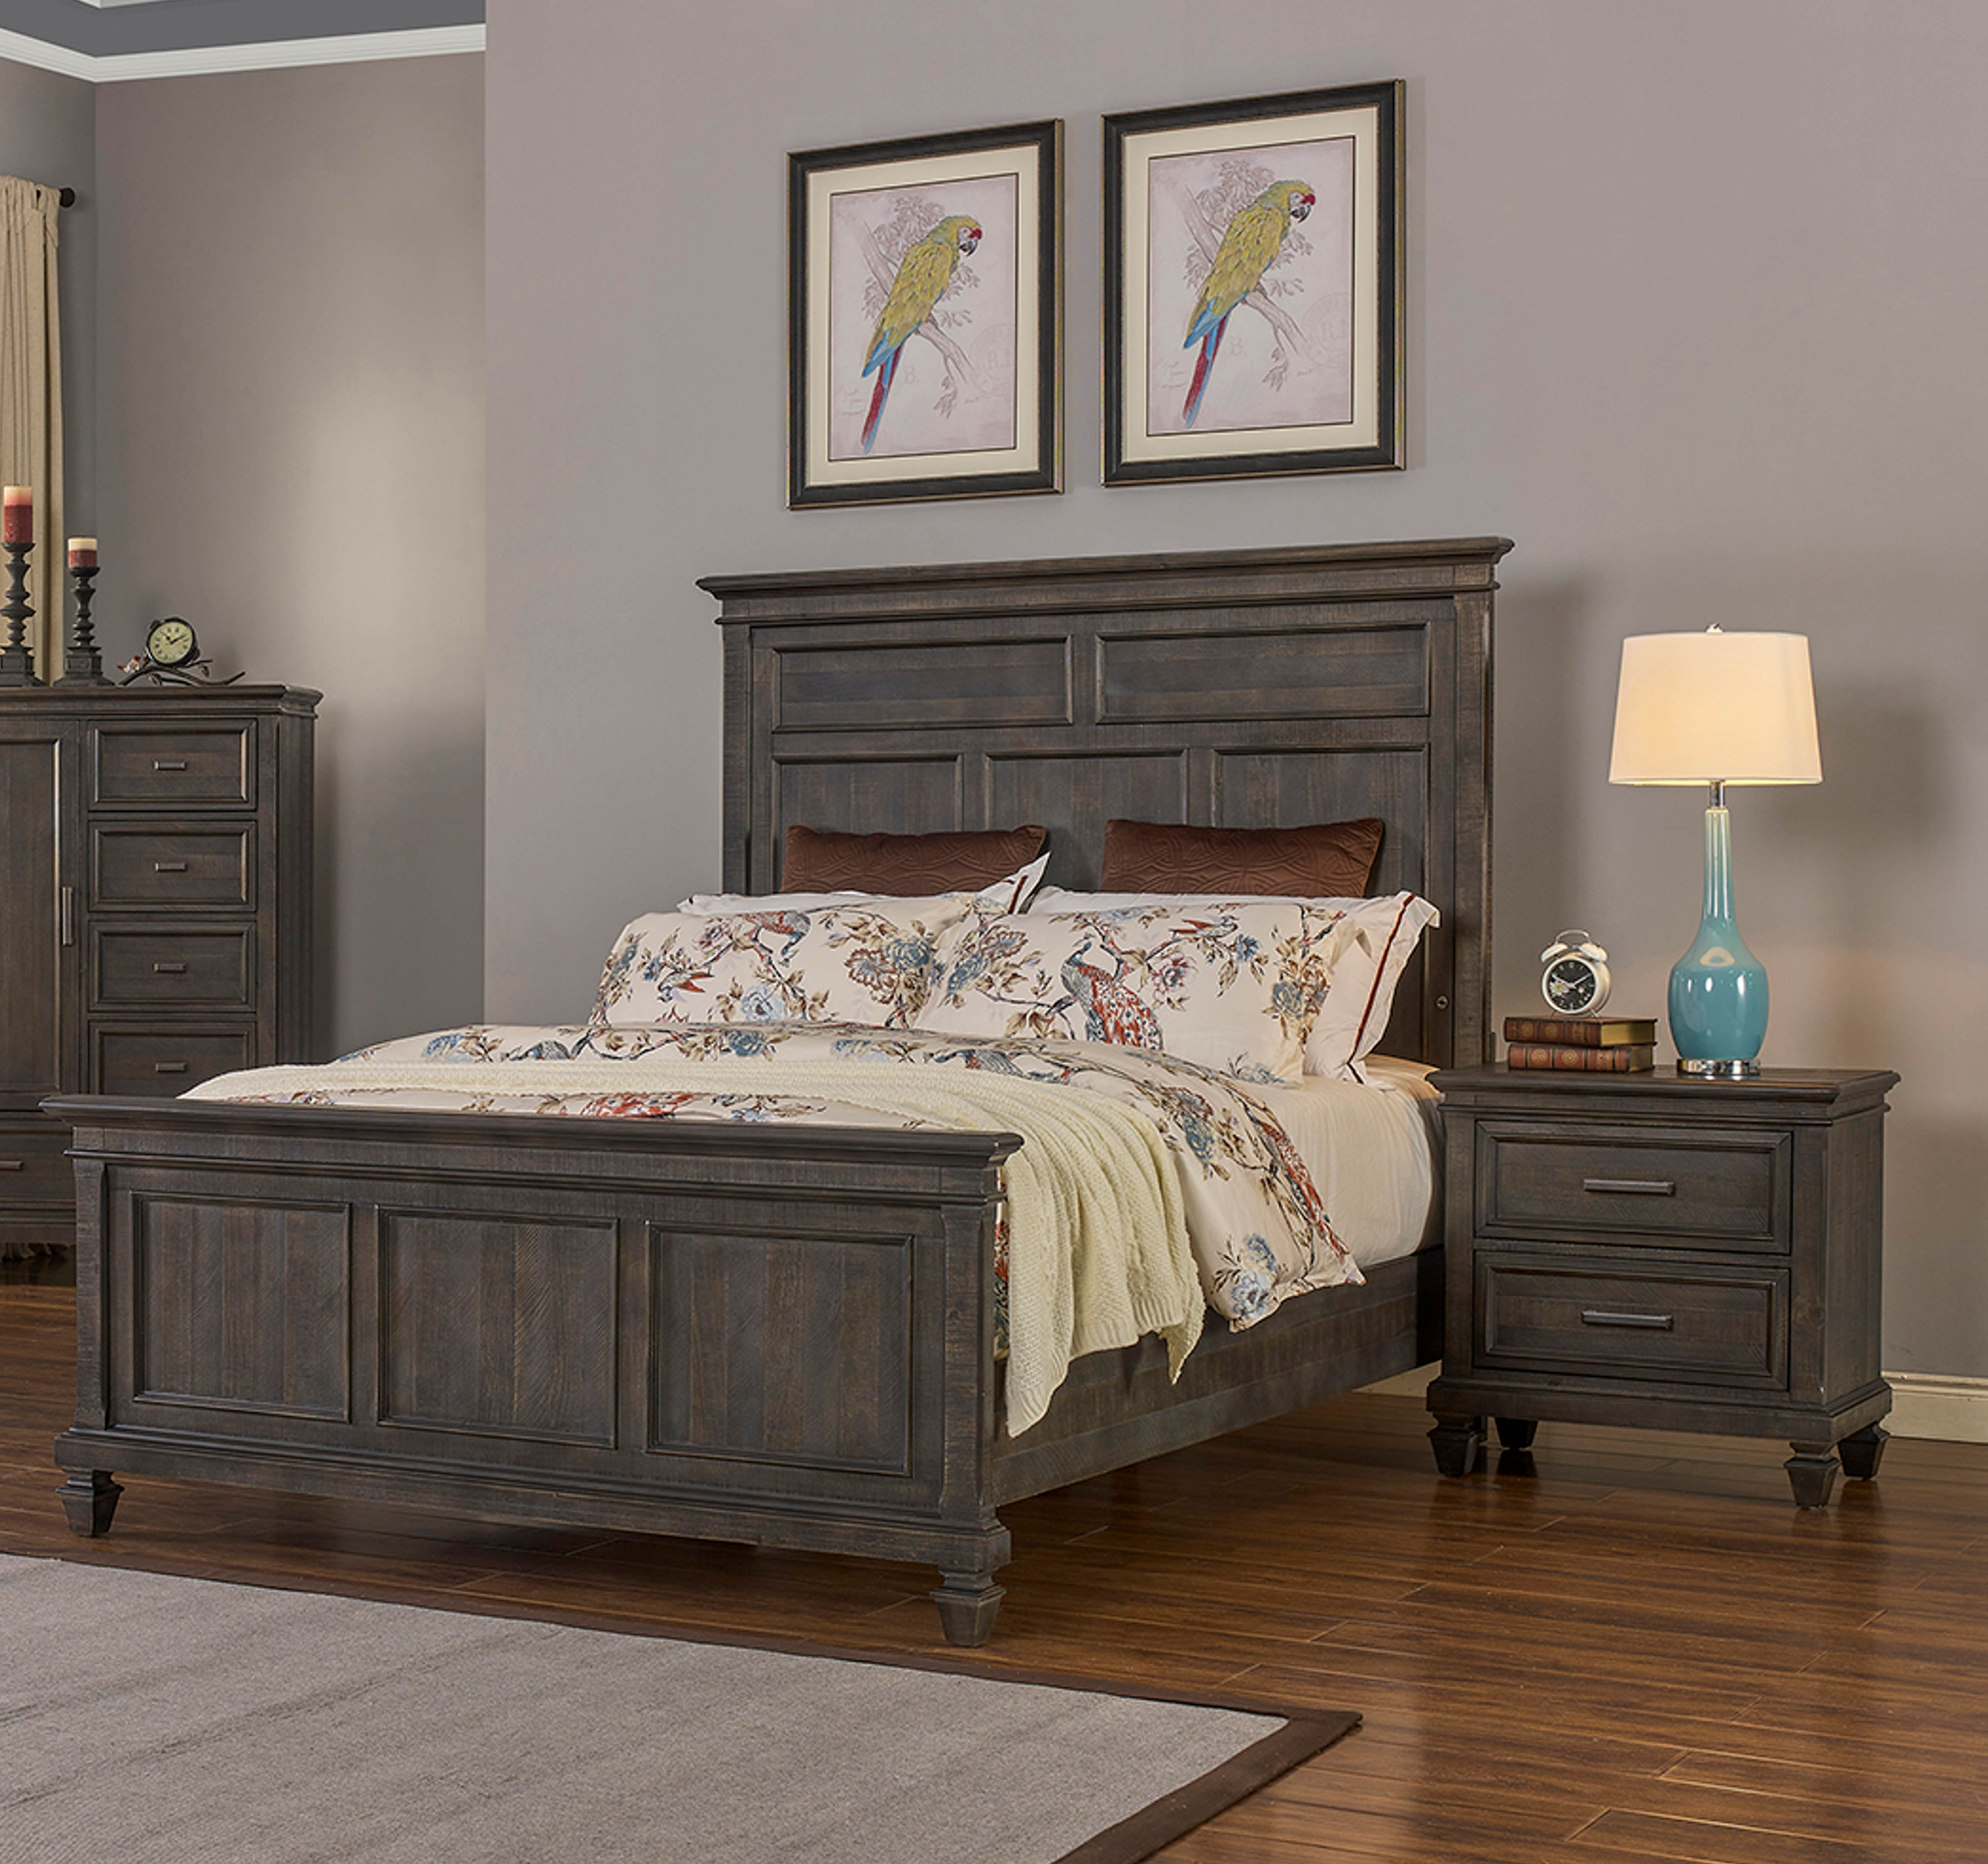 New Classic Furniture Cadiz Ash 2pc Bedroom Set with King Bed